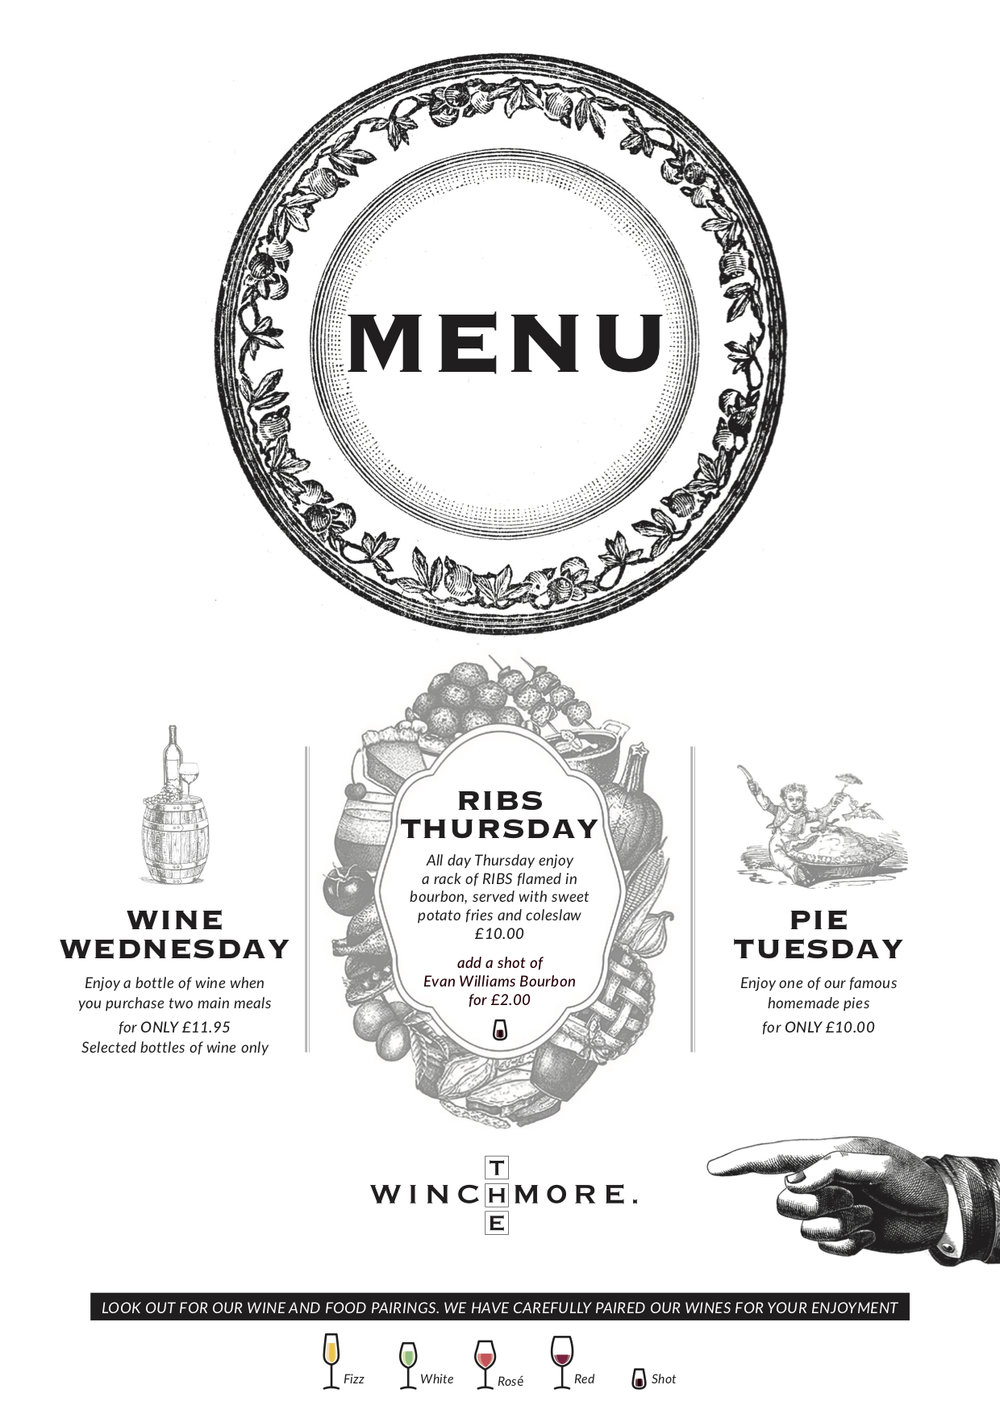 WINCHMORE+MENU+2018.jpg